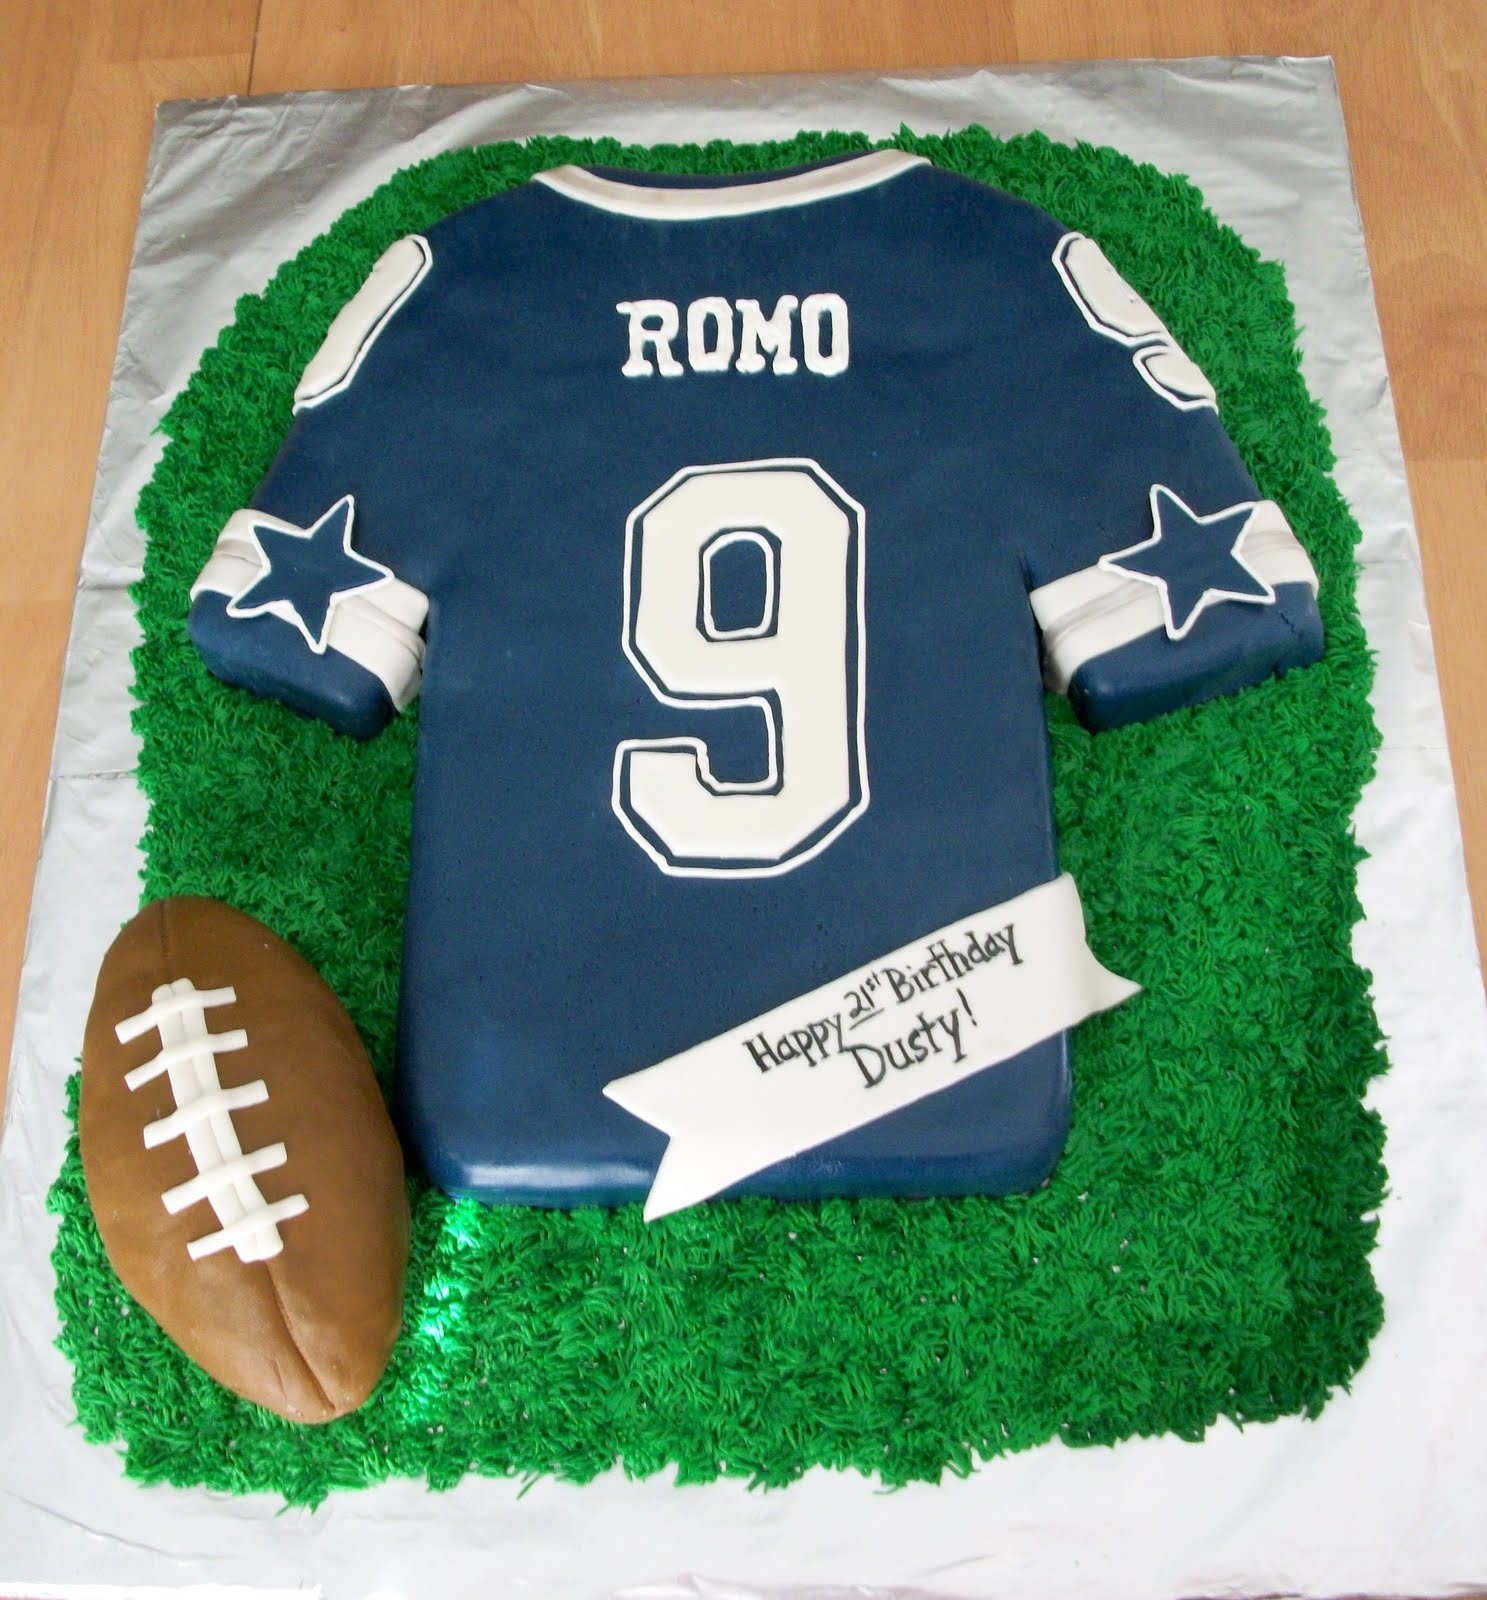 Cake Decorating Store Nj : Bellissimo! Specialty Cakes: Cowboys Jersey Cake - 9/10